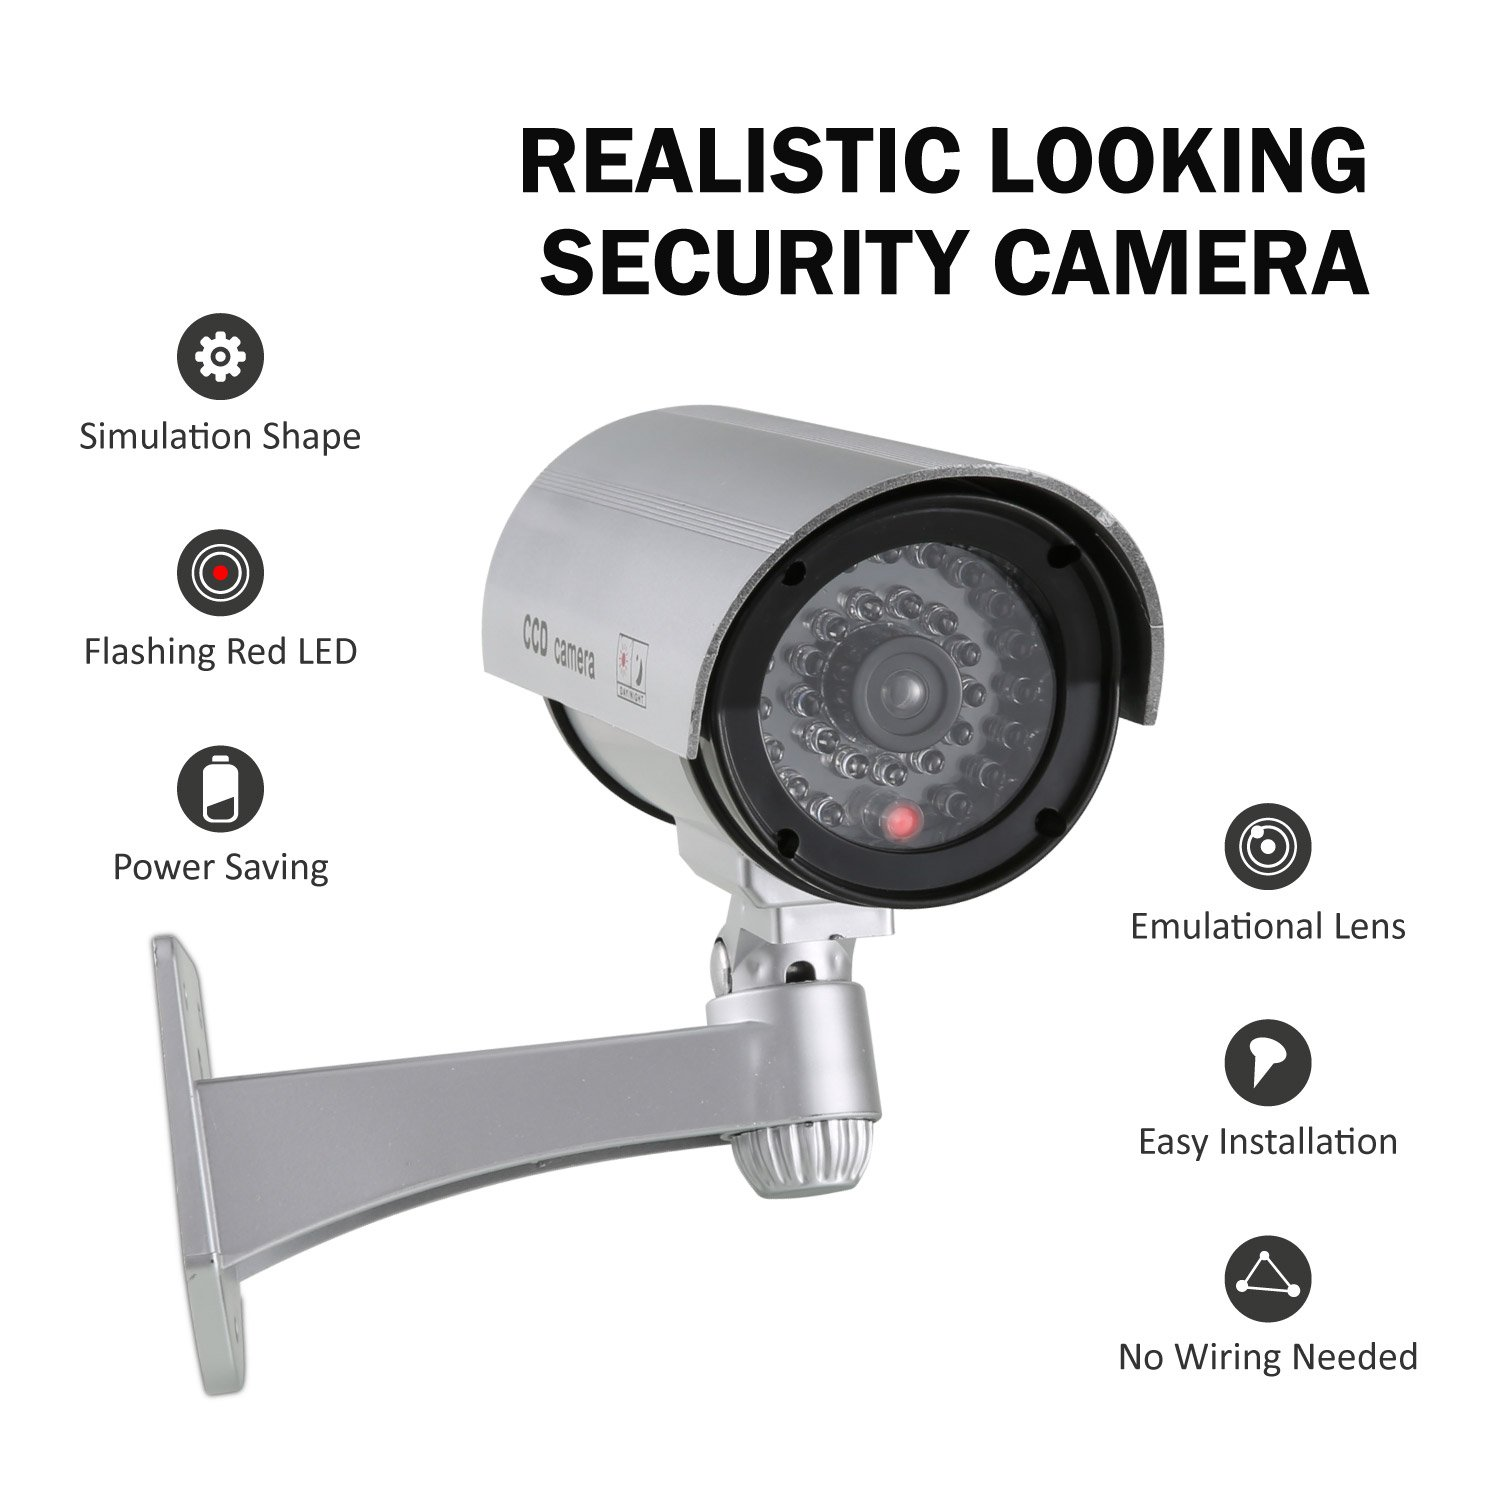 ANNKE 2 Pack Home Security Simulated Cameras with Flashing Red LED for Indoor and Outdoor use by ANNKE (Image #3)